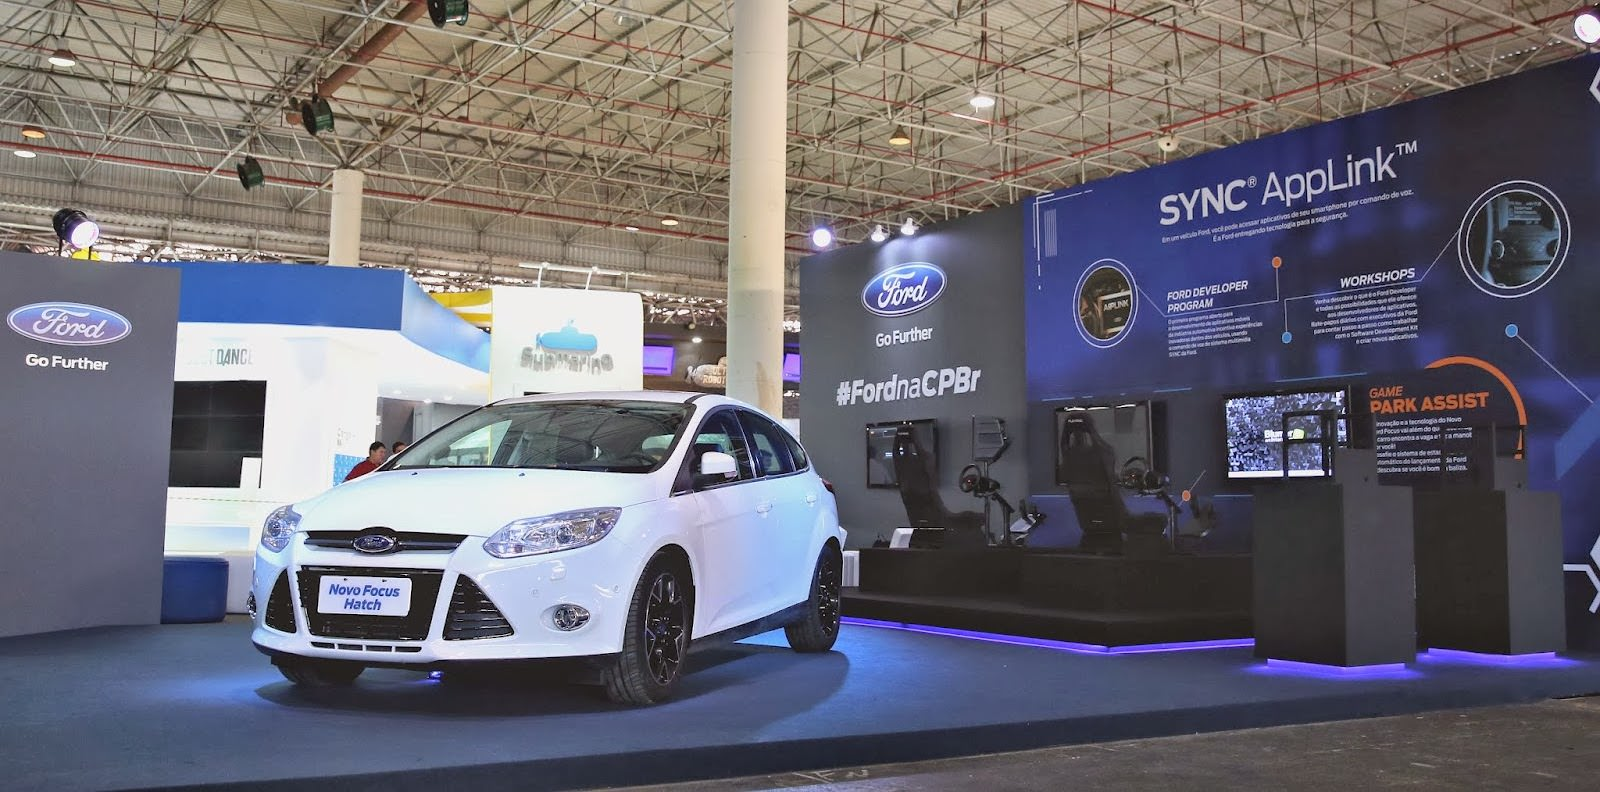 Ford campus party 2014